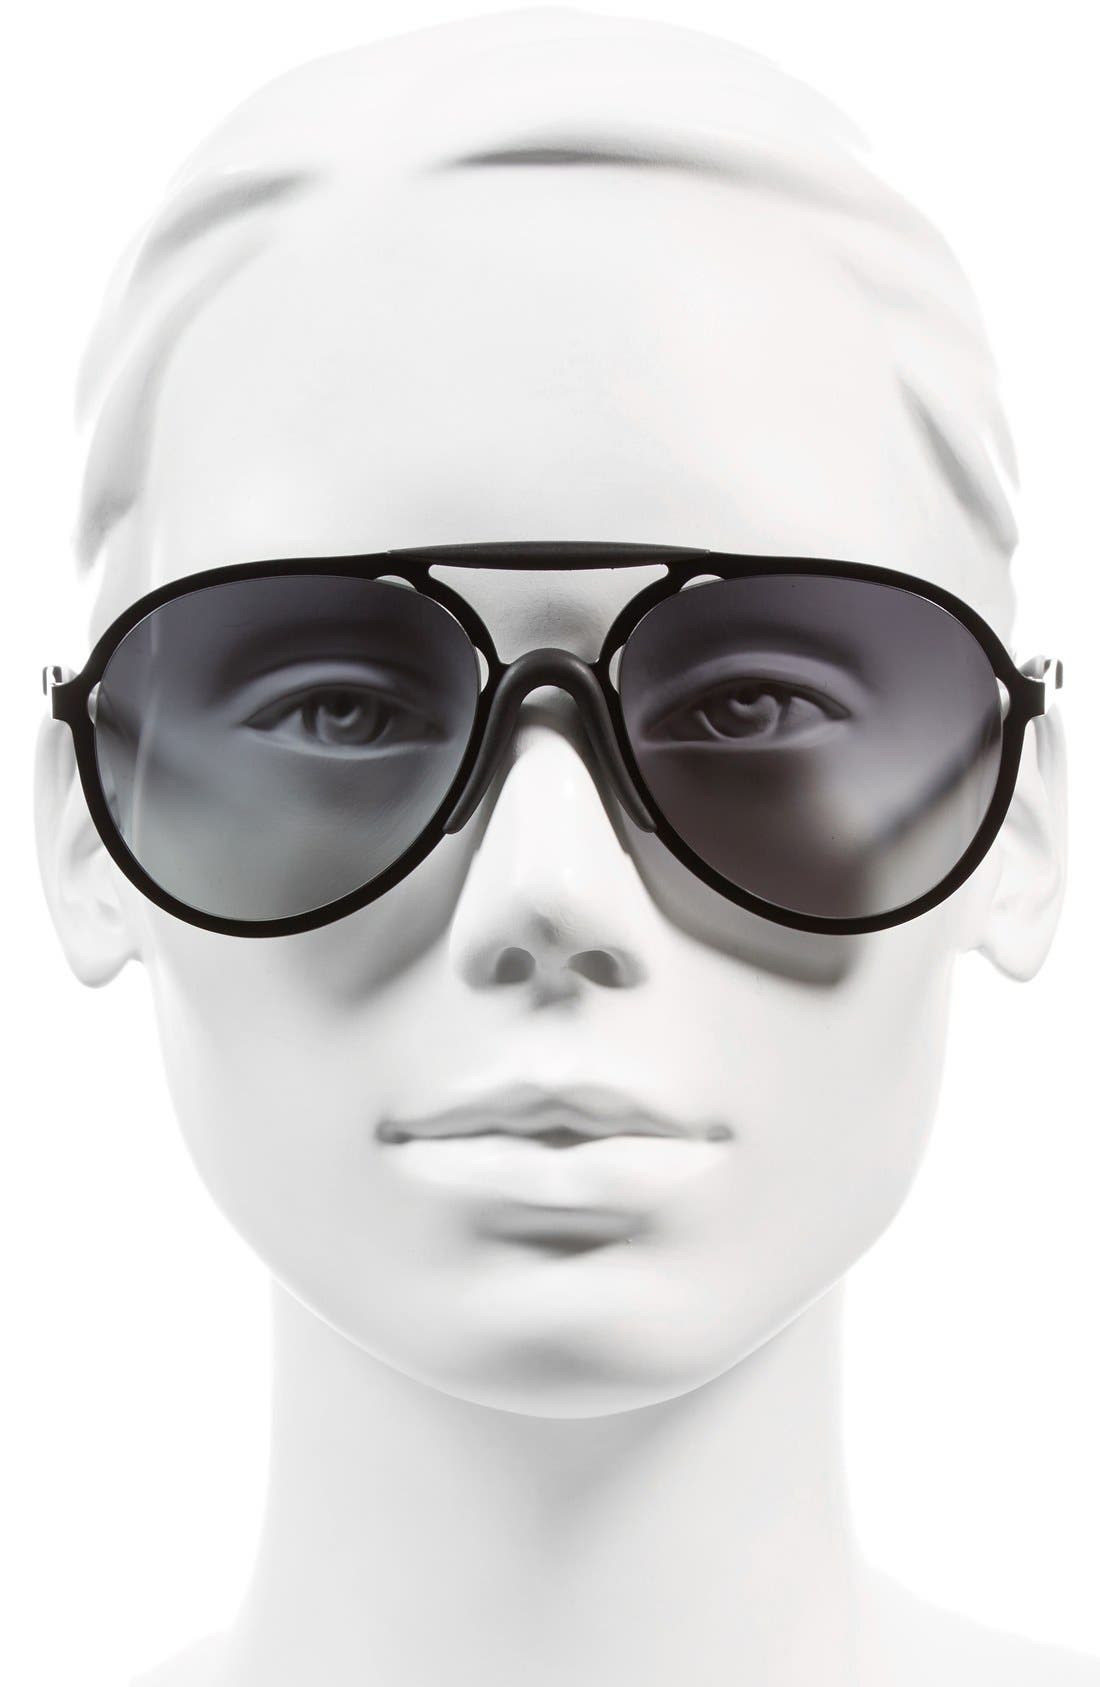 57mm Sunglasses,                             Alternate thumbnail 3, color,                             BLACK/ GREY GRADIENT